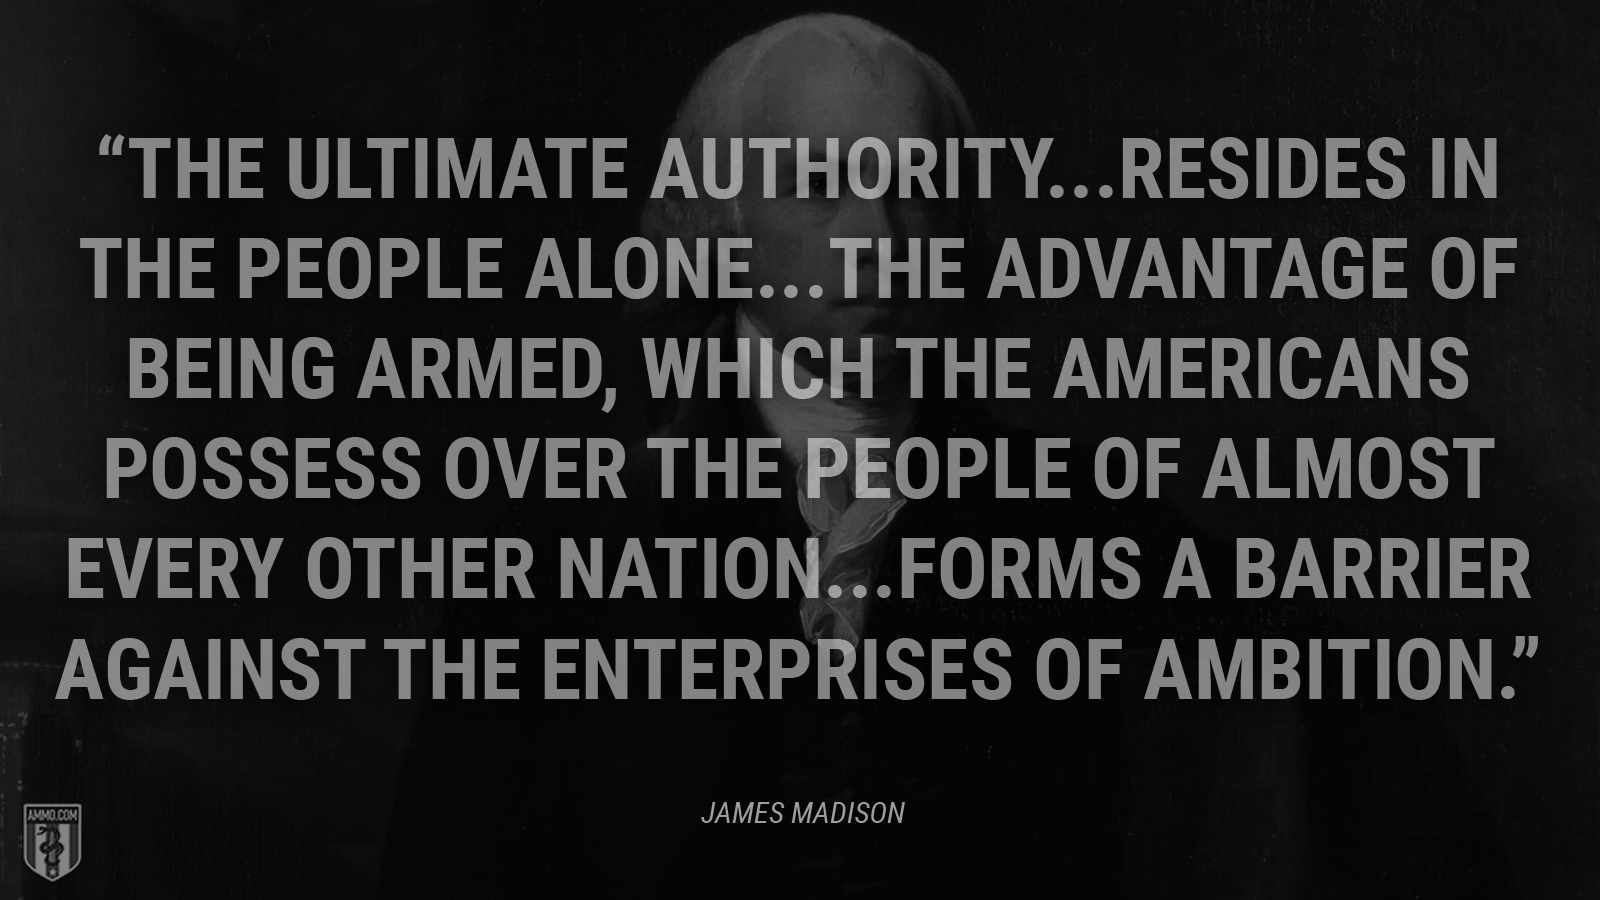 """The ultimate authority...resides in the people alone...The advantage of being armed, which the Americans possess over the people of almost every other nation...forms a barrier against the enterprises of ambition."" - James Madison"